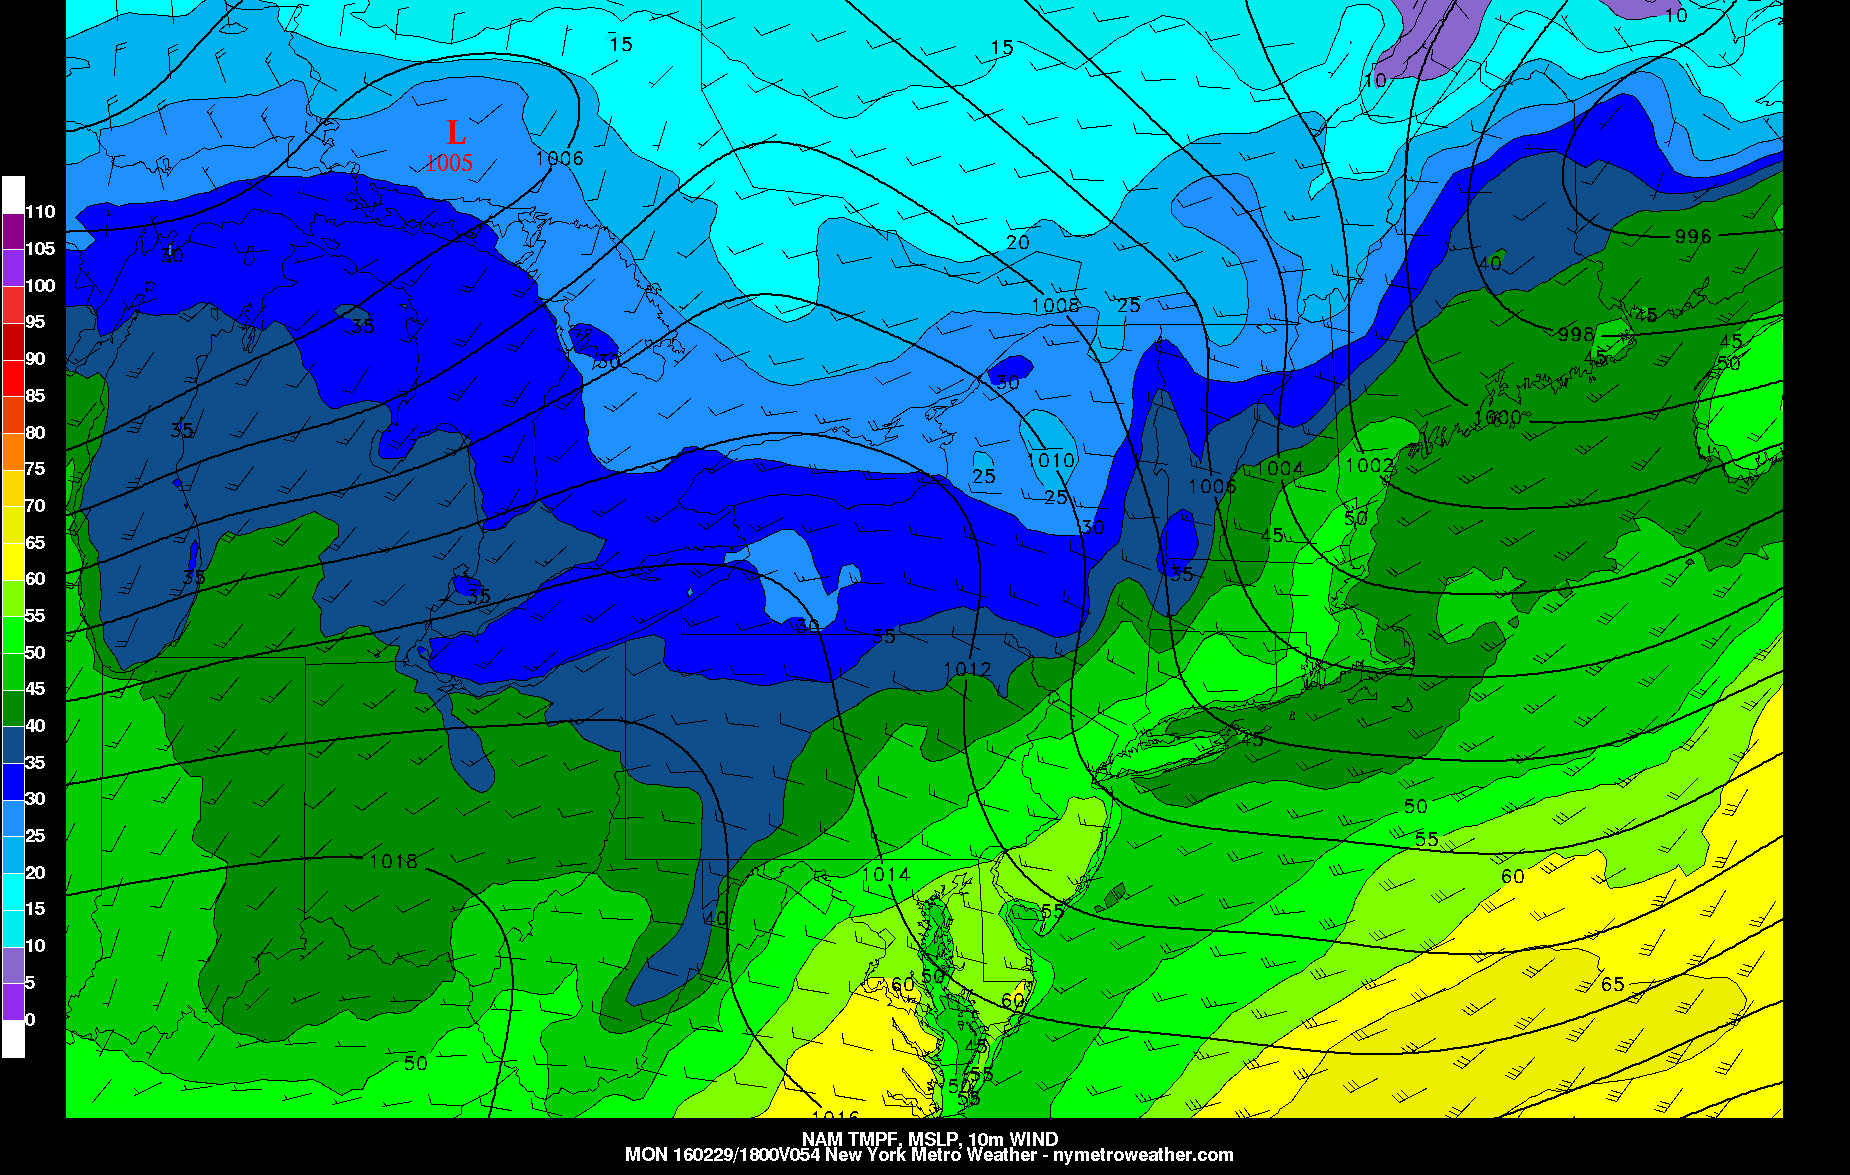 The NAM showing 50s again again on Monday, with west-northwest winds behind the cold front